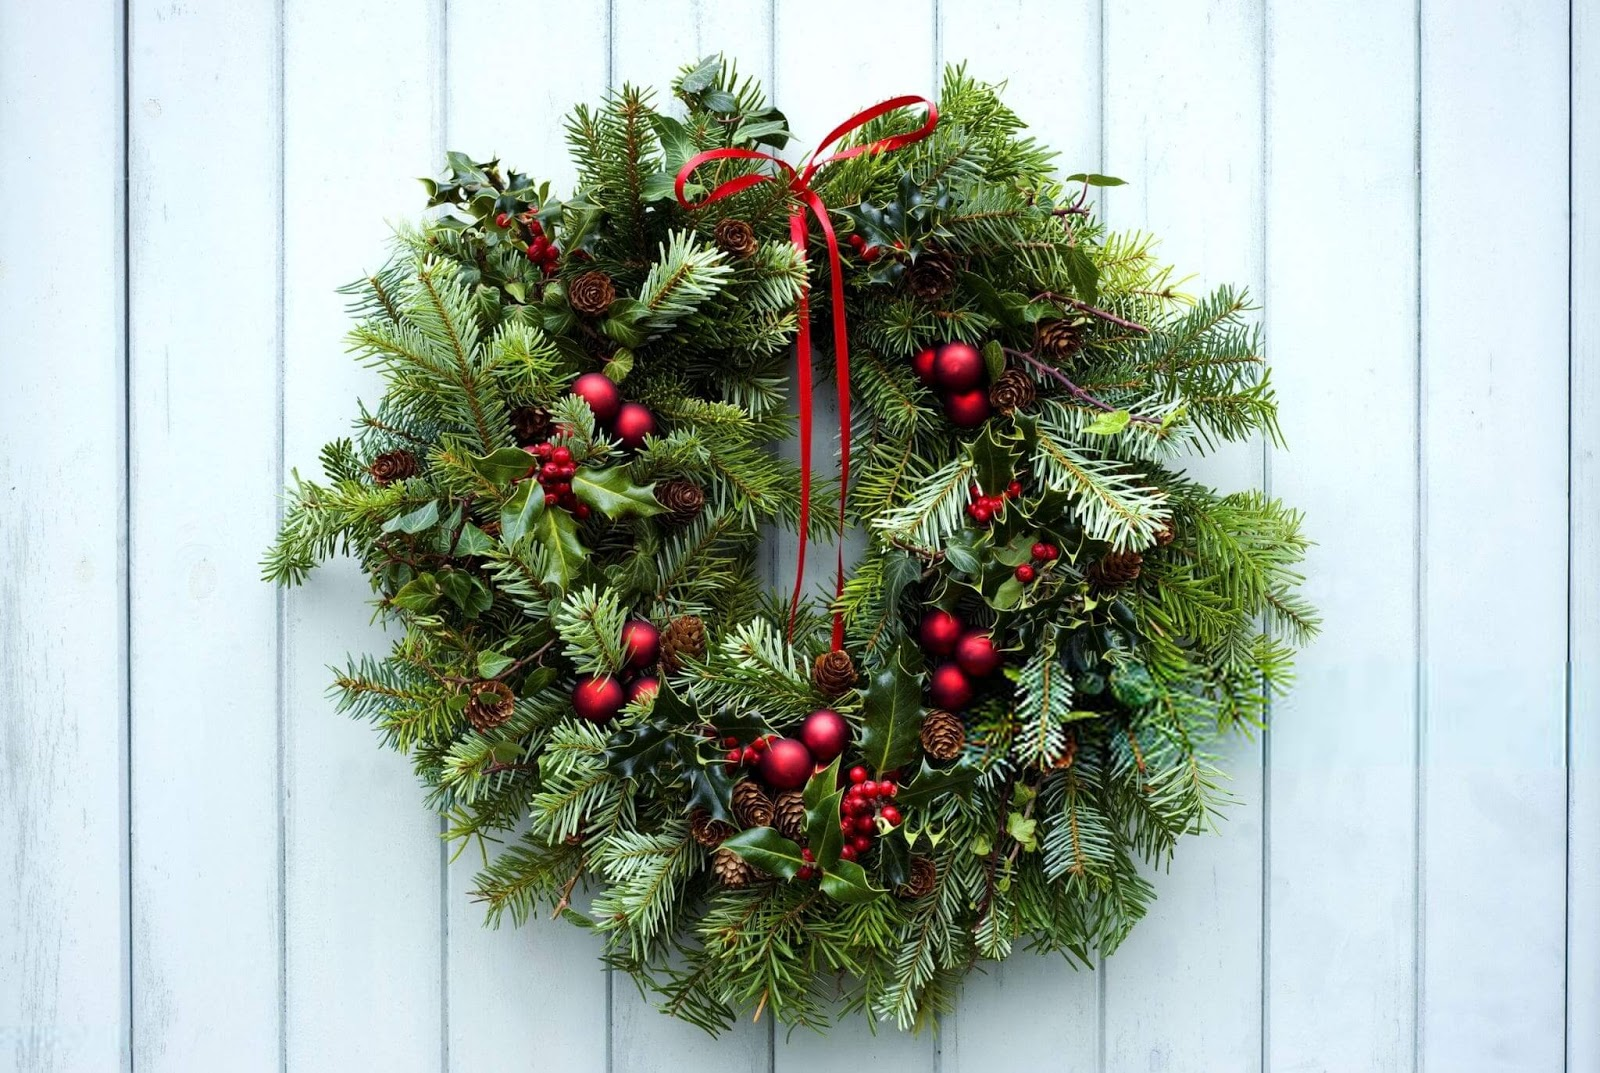 Christmas Wreath images Free